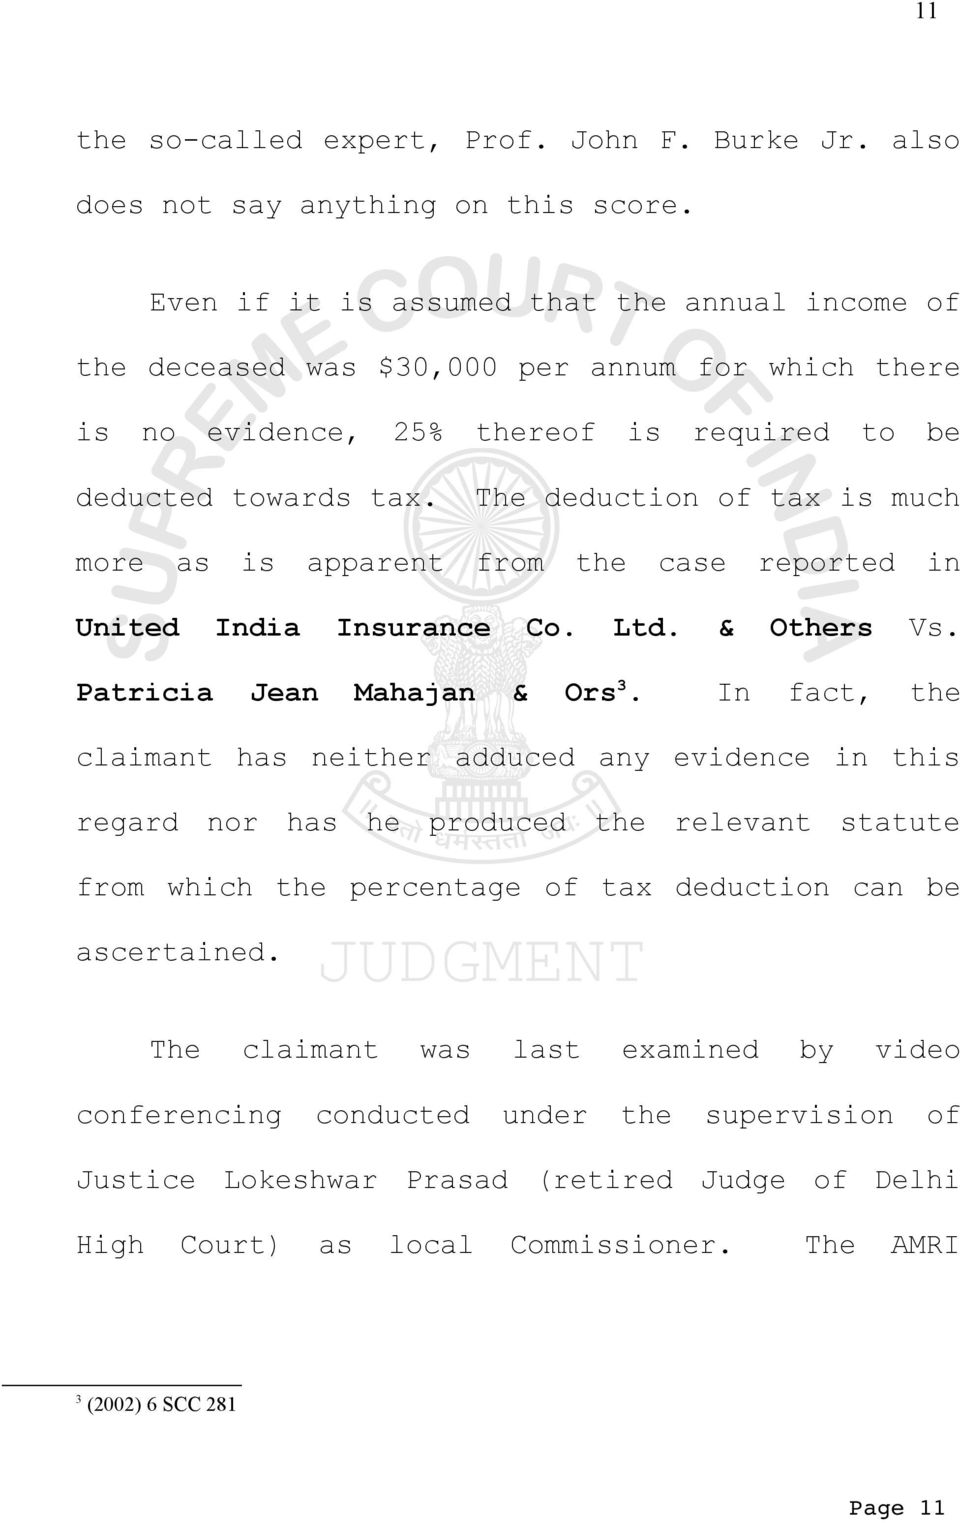 The deduction of tax is much more as is apparent from the case reported in United India Insurance Co. Ltd. & Others Vs. Patricia Jean Mahajan & Ors 3.